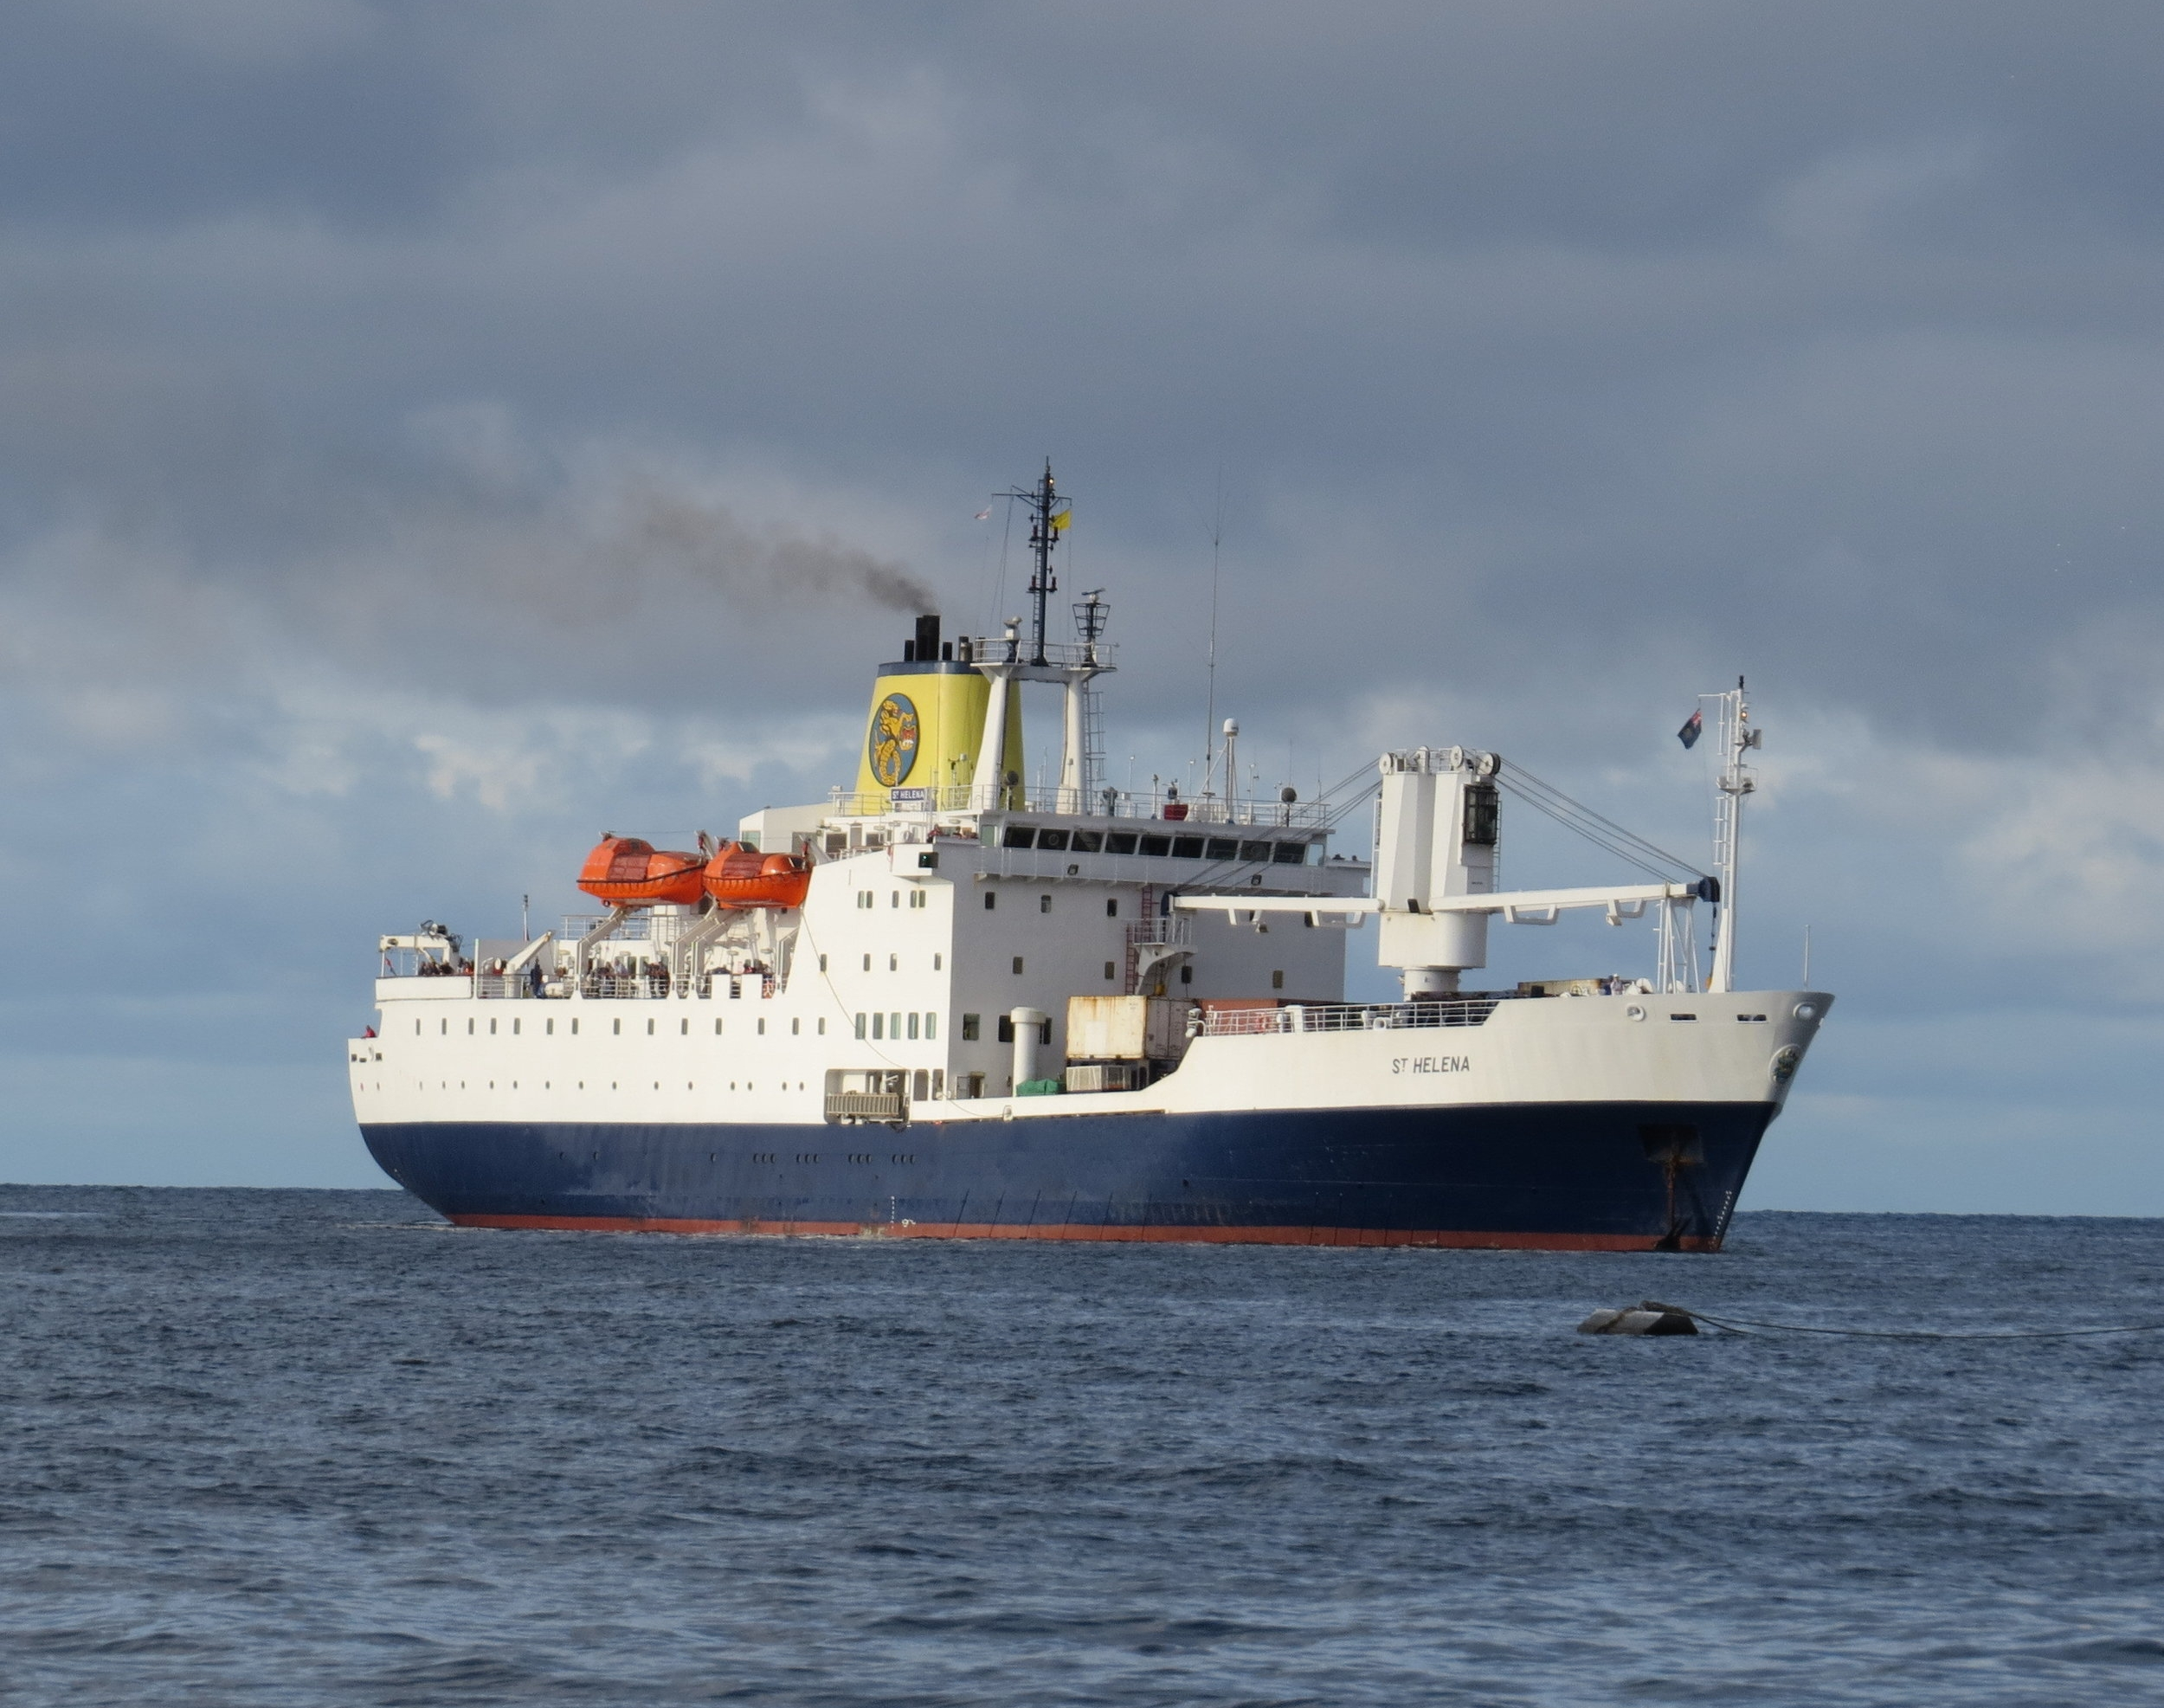 For decades, the RMS St Helena was the primary transport for supplies and passengers on and off the island, but withthe new airport opening in October 2017, the mailship is scheduled to discontinue service in  February 2018,  read more here.